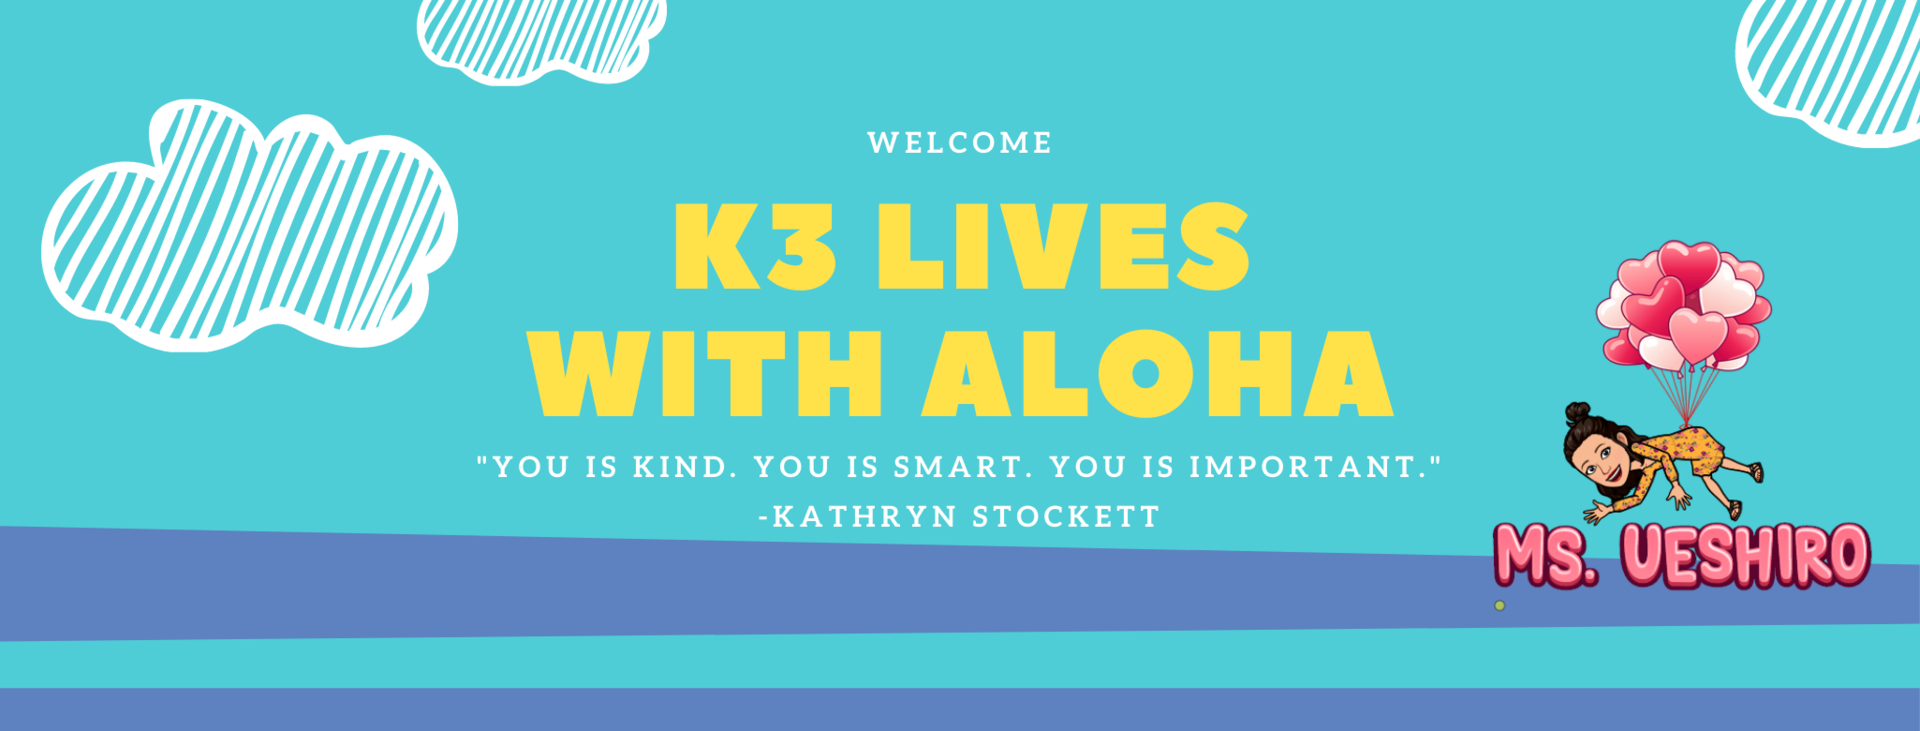 K3 lives with Aloha. 'You is kind.  You is smart.  You is important.'  Kathryn Stockett